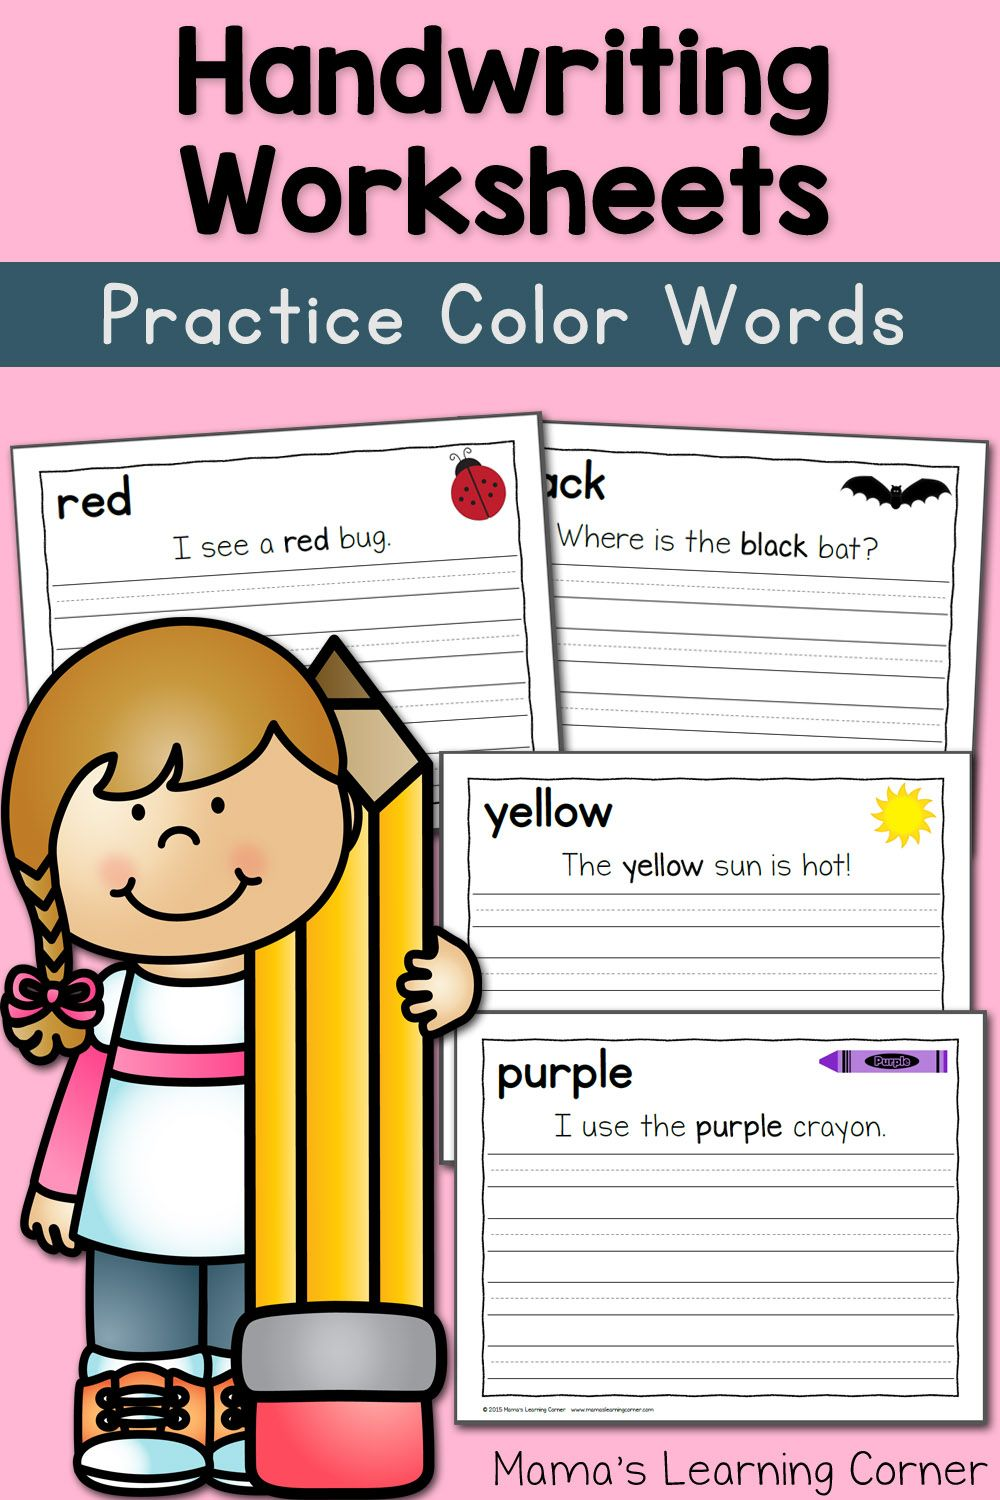 handwriting worksheets for kids: color words! | for the kiddies